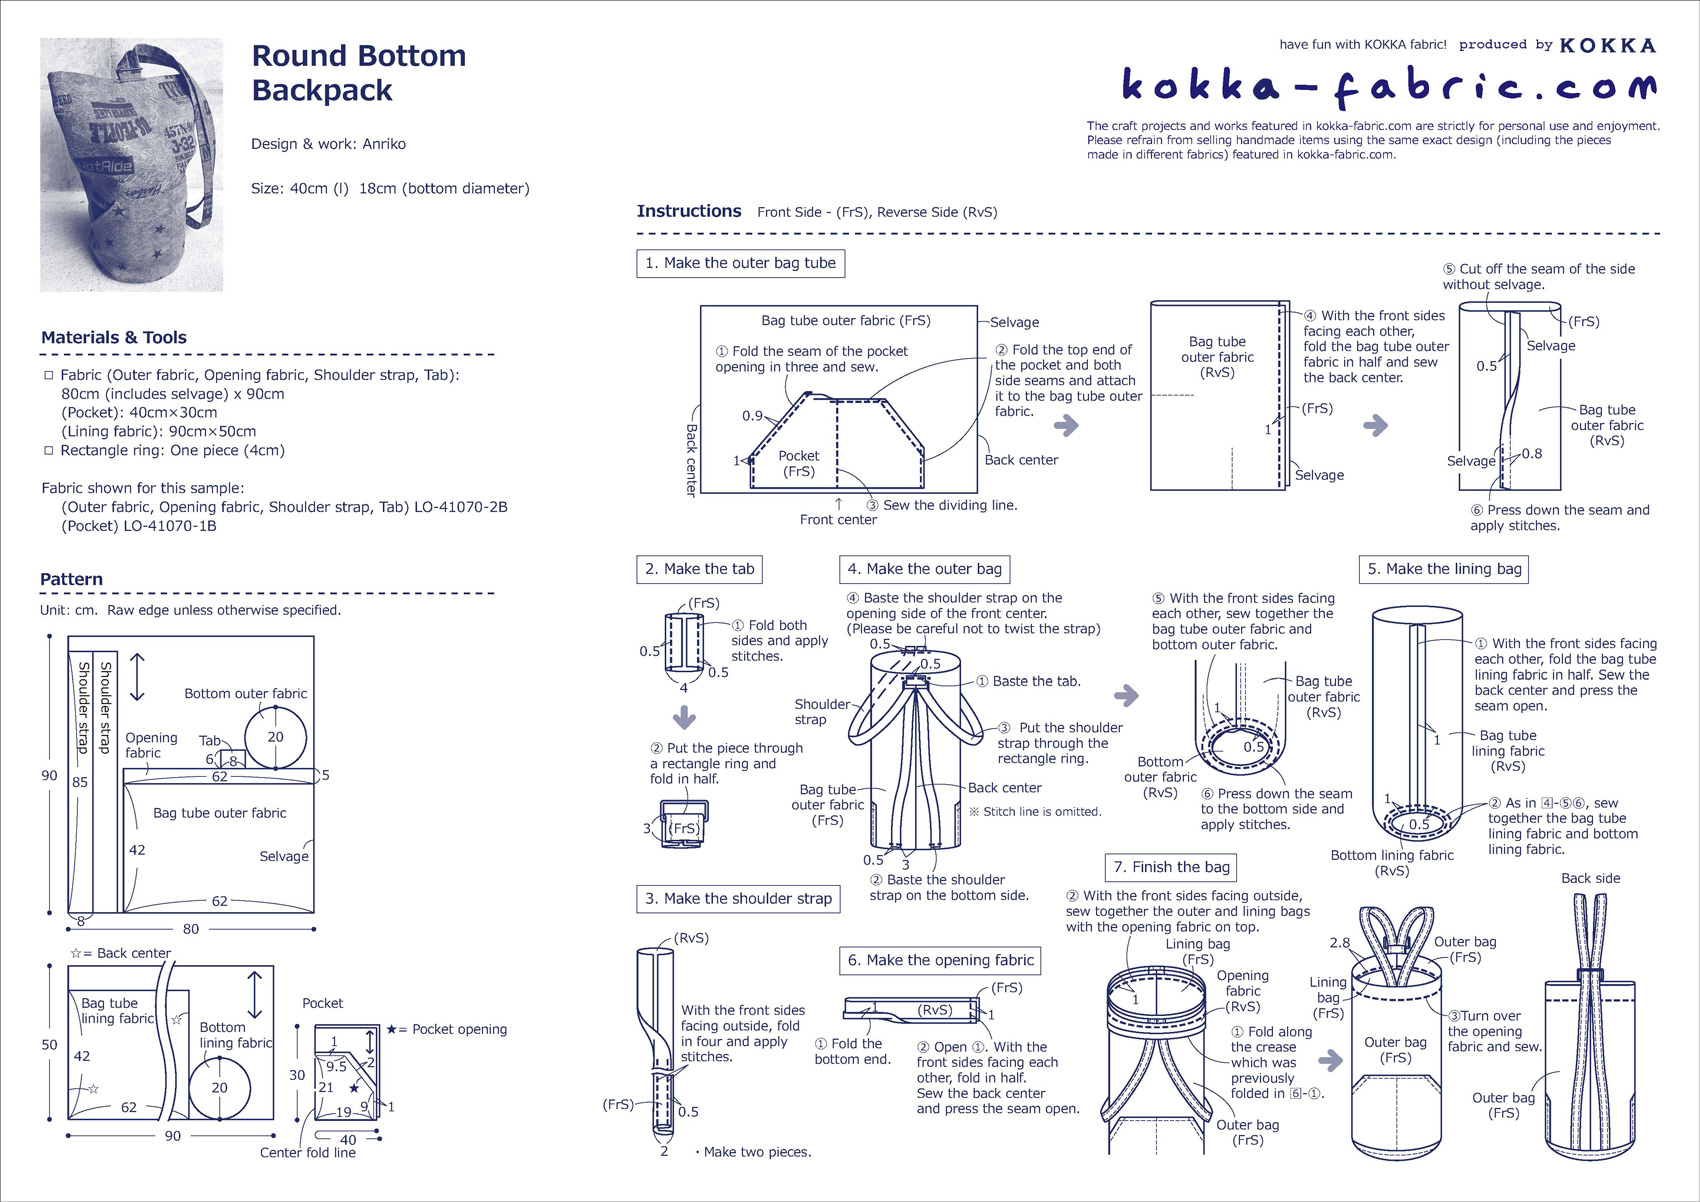 CS309_Round-Bottom-Backpack_E